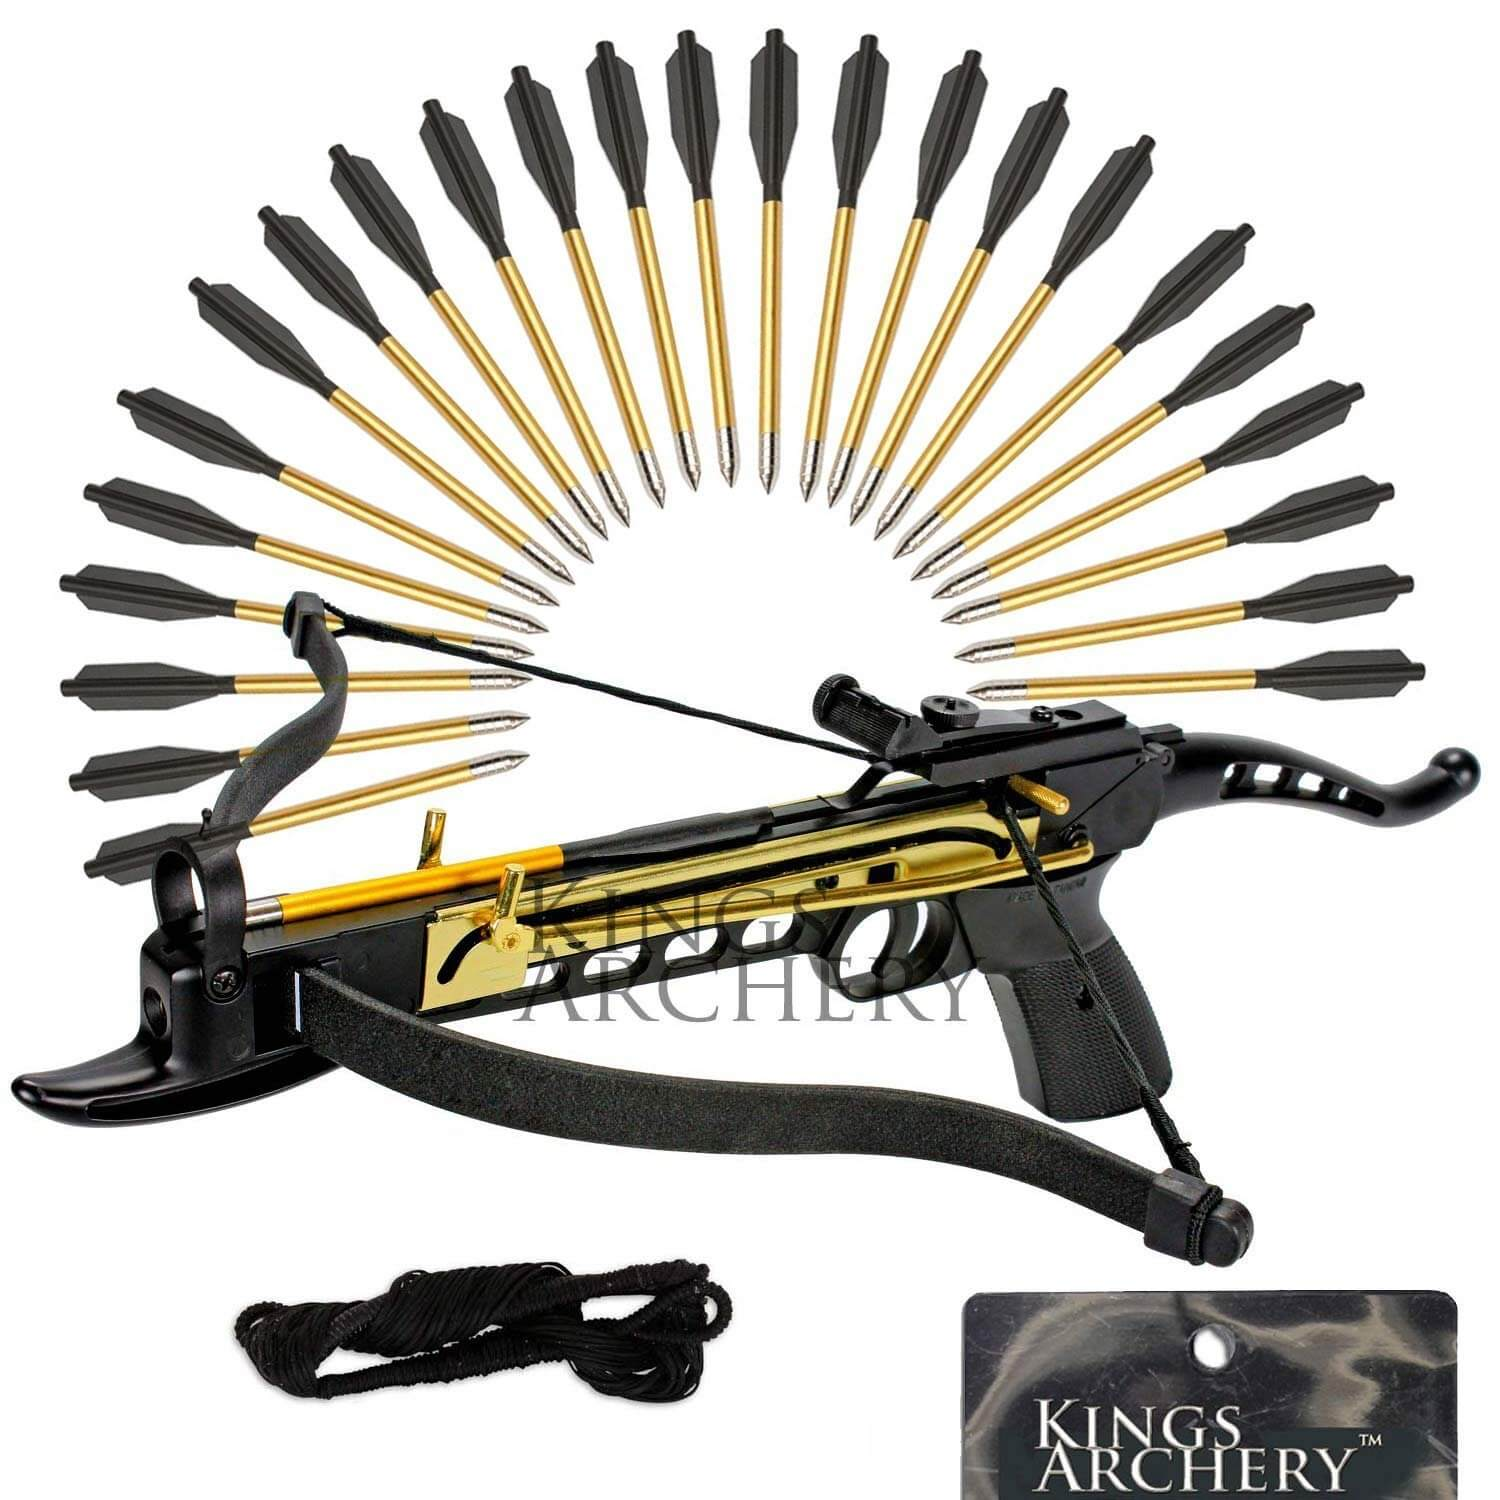 KingsArchery self cocking crossbow bundle with adjustable sights and spare